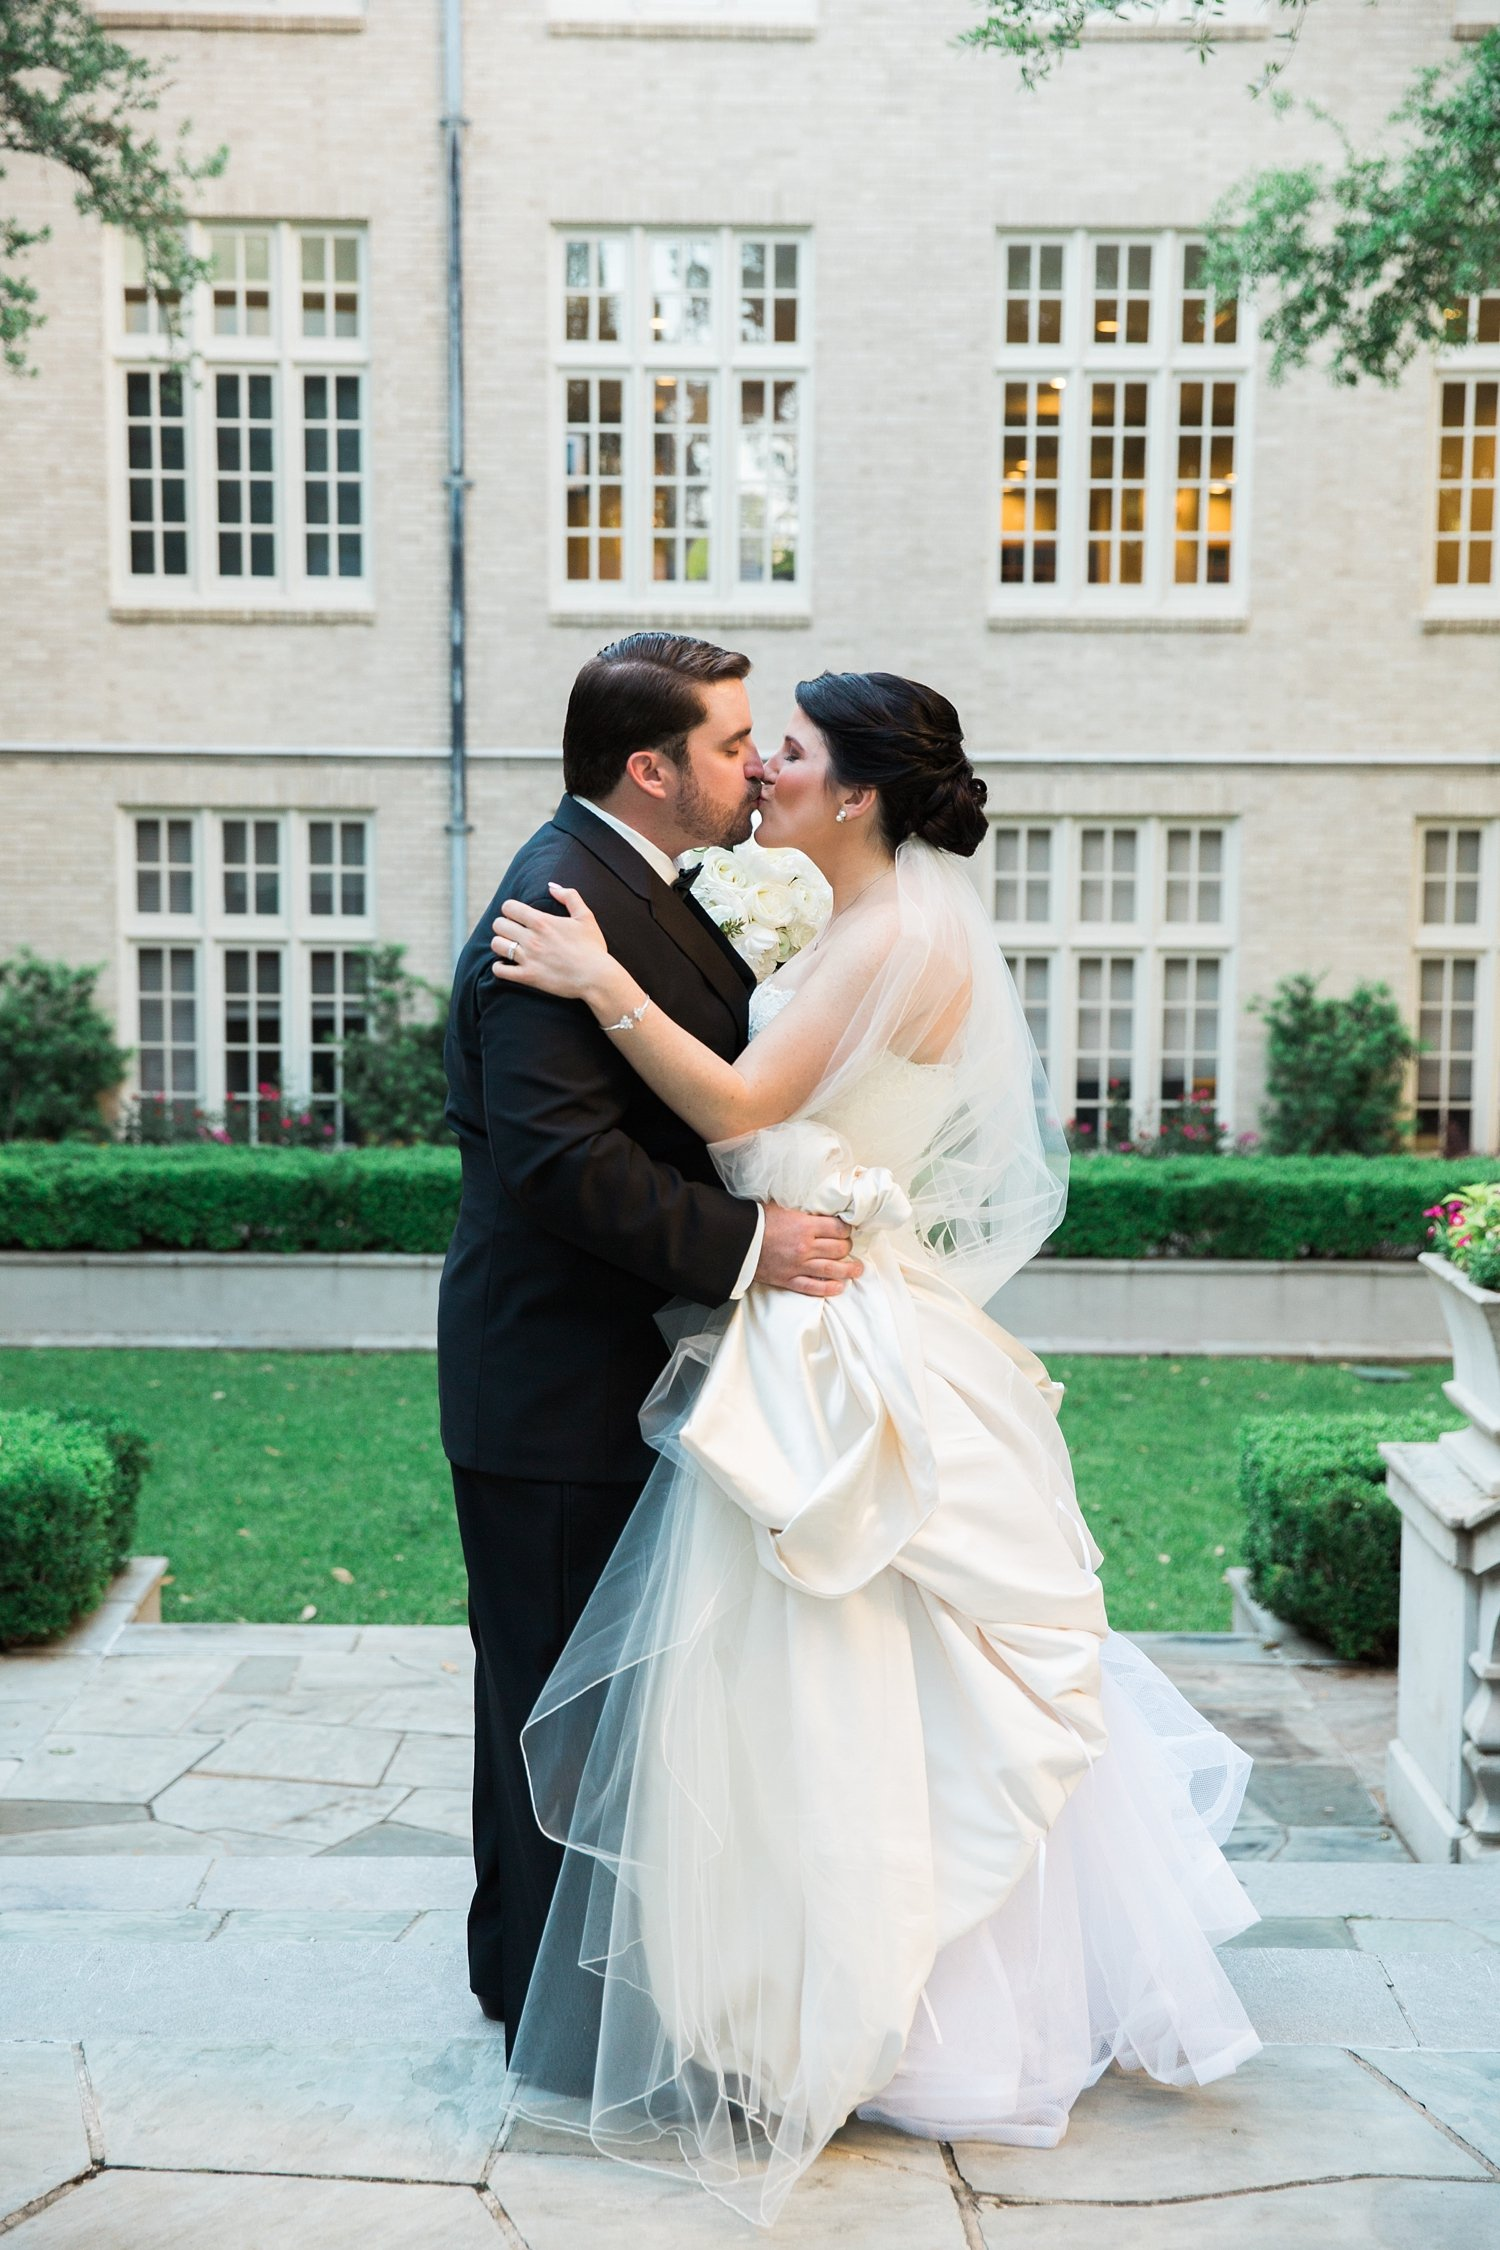 dallas-wedding-dcc-highland-park-hpumc-amanda-jm-18